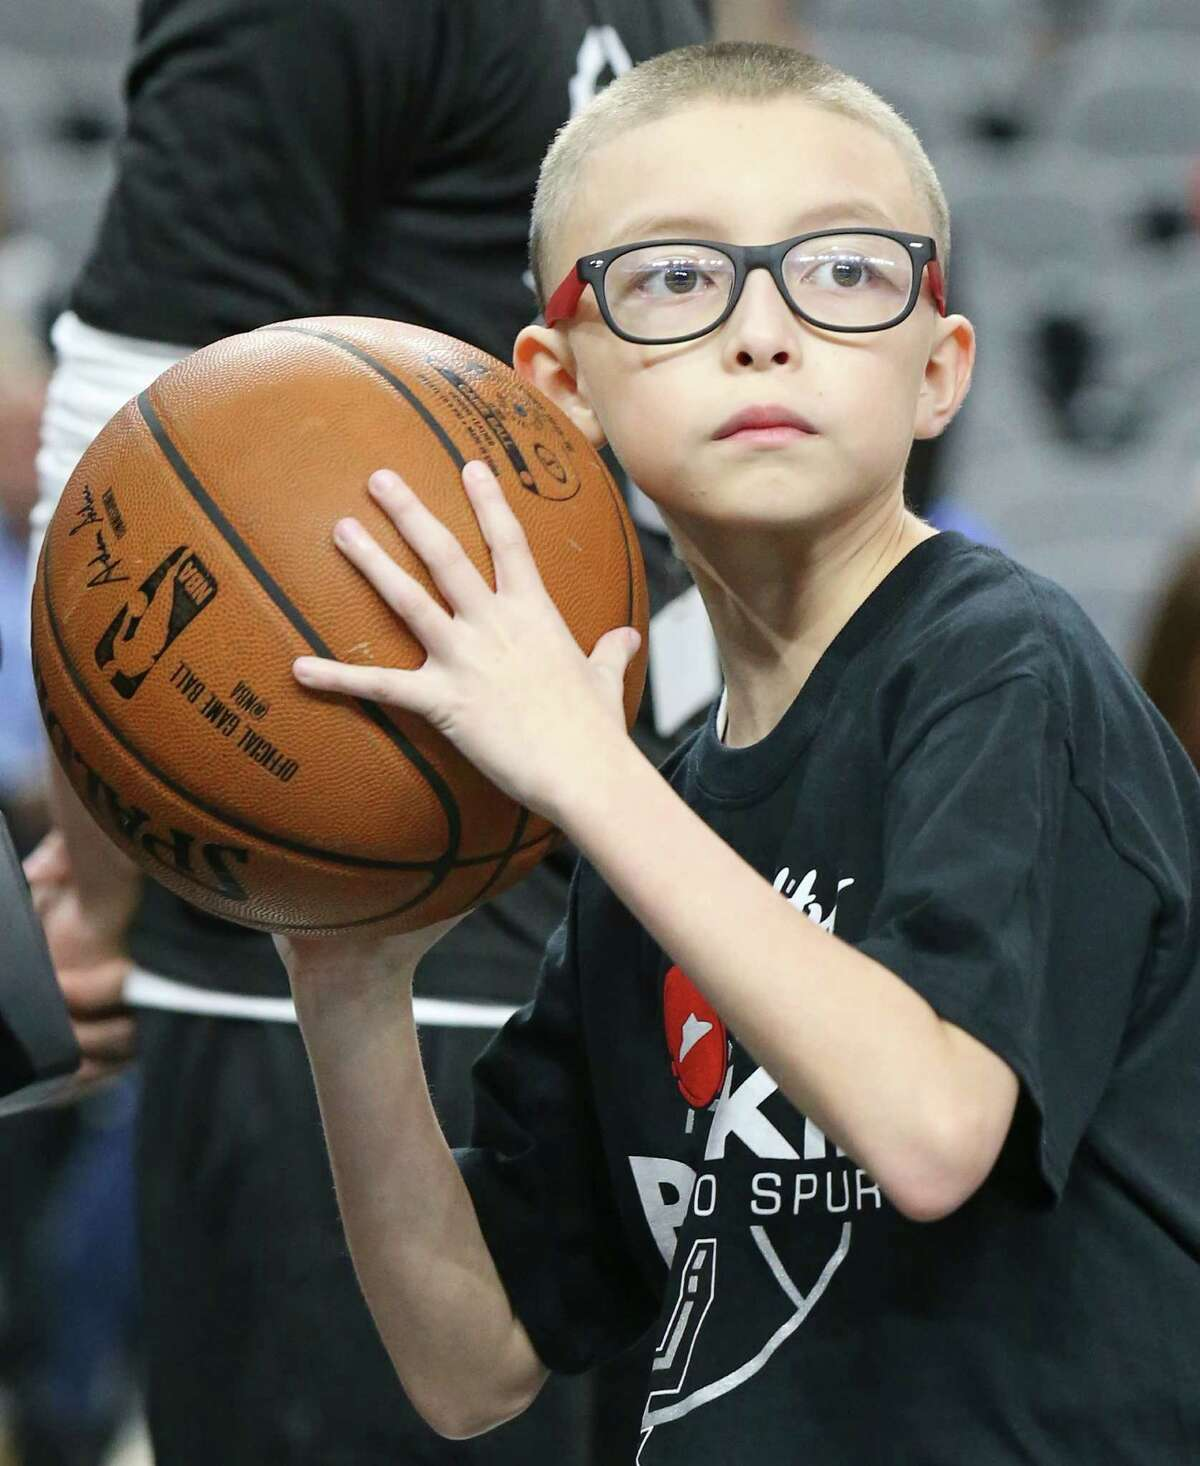 Ginobili San Miguel-Ramirez, 10, throws the ball to San Antonio Spurs players during warmups before the game with the Utah Jazz Monday Dec. 14, 2015 at the AT&T Center.